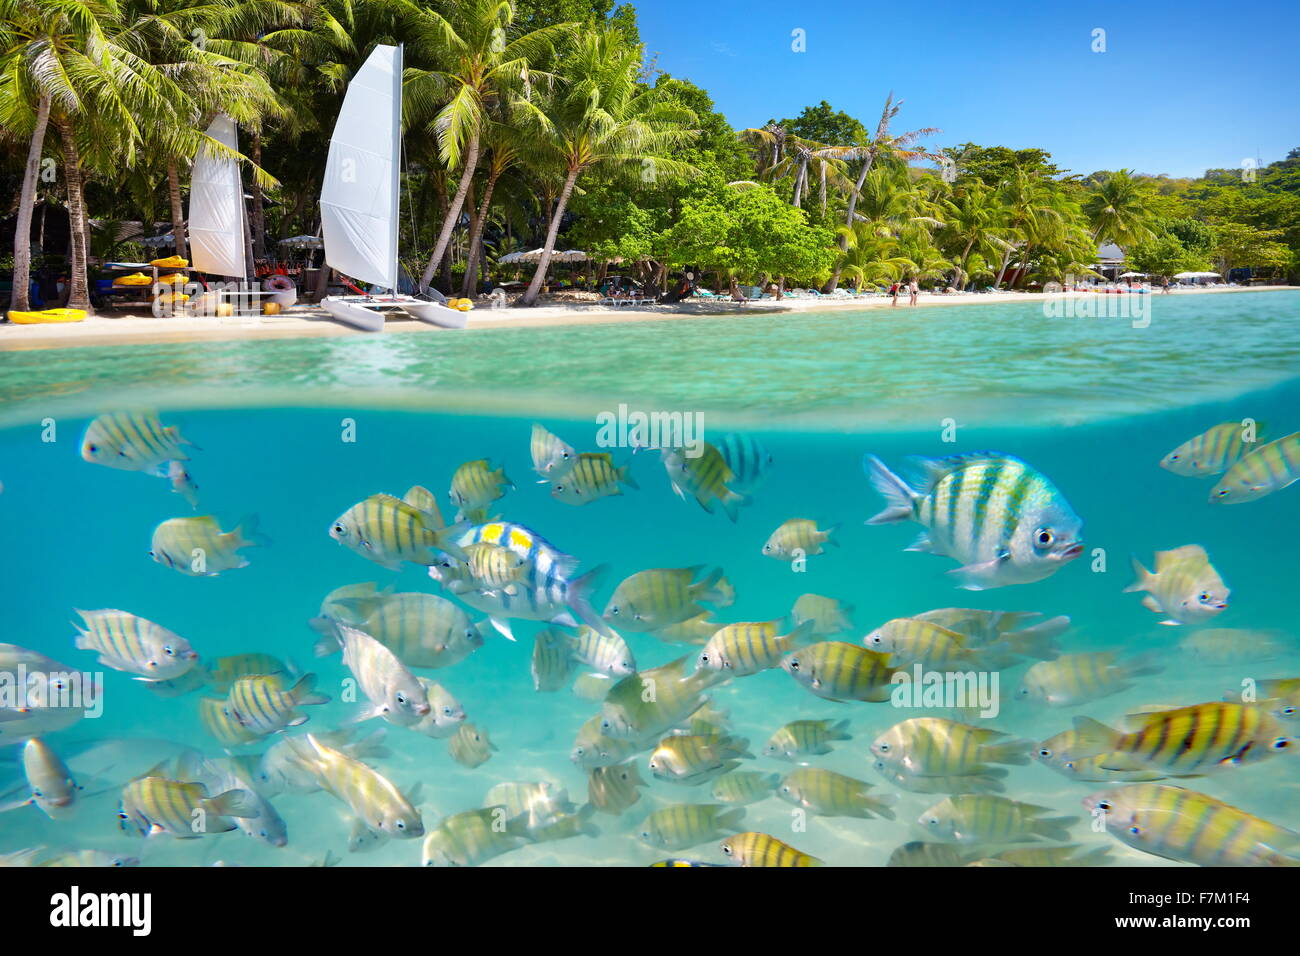 Thailand - tropical beach and underwater sea view with fishes at Ko Samet Island, Thailand, Asia - Stock Image